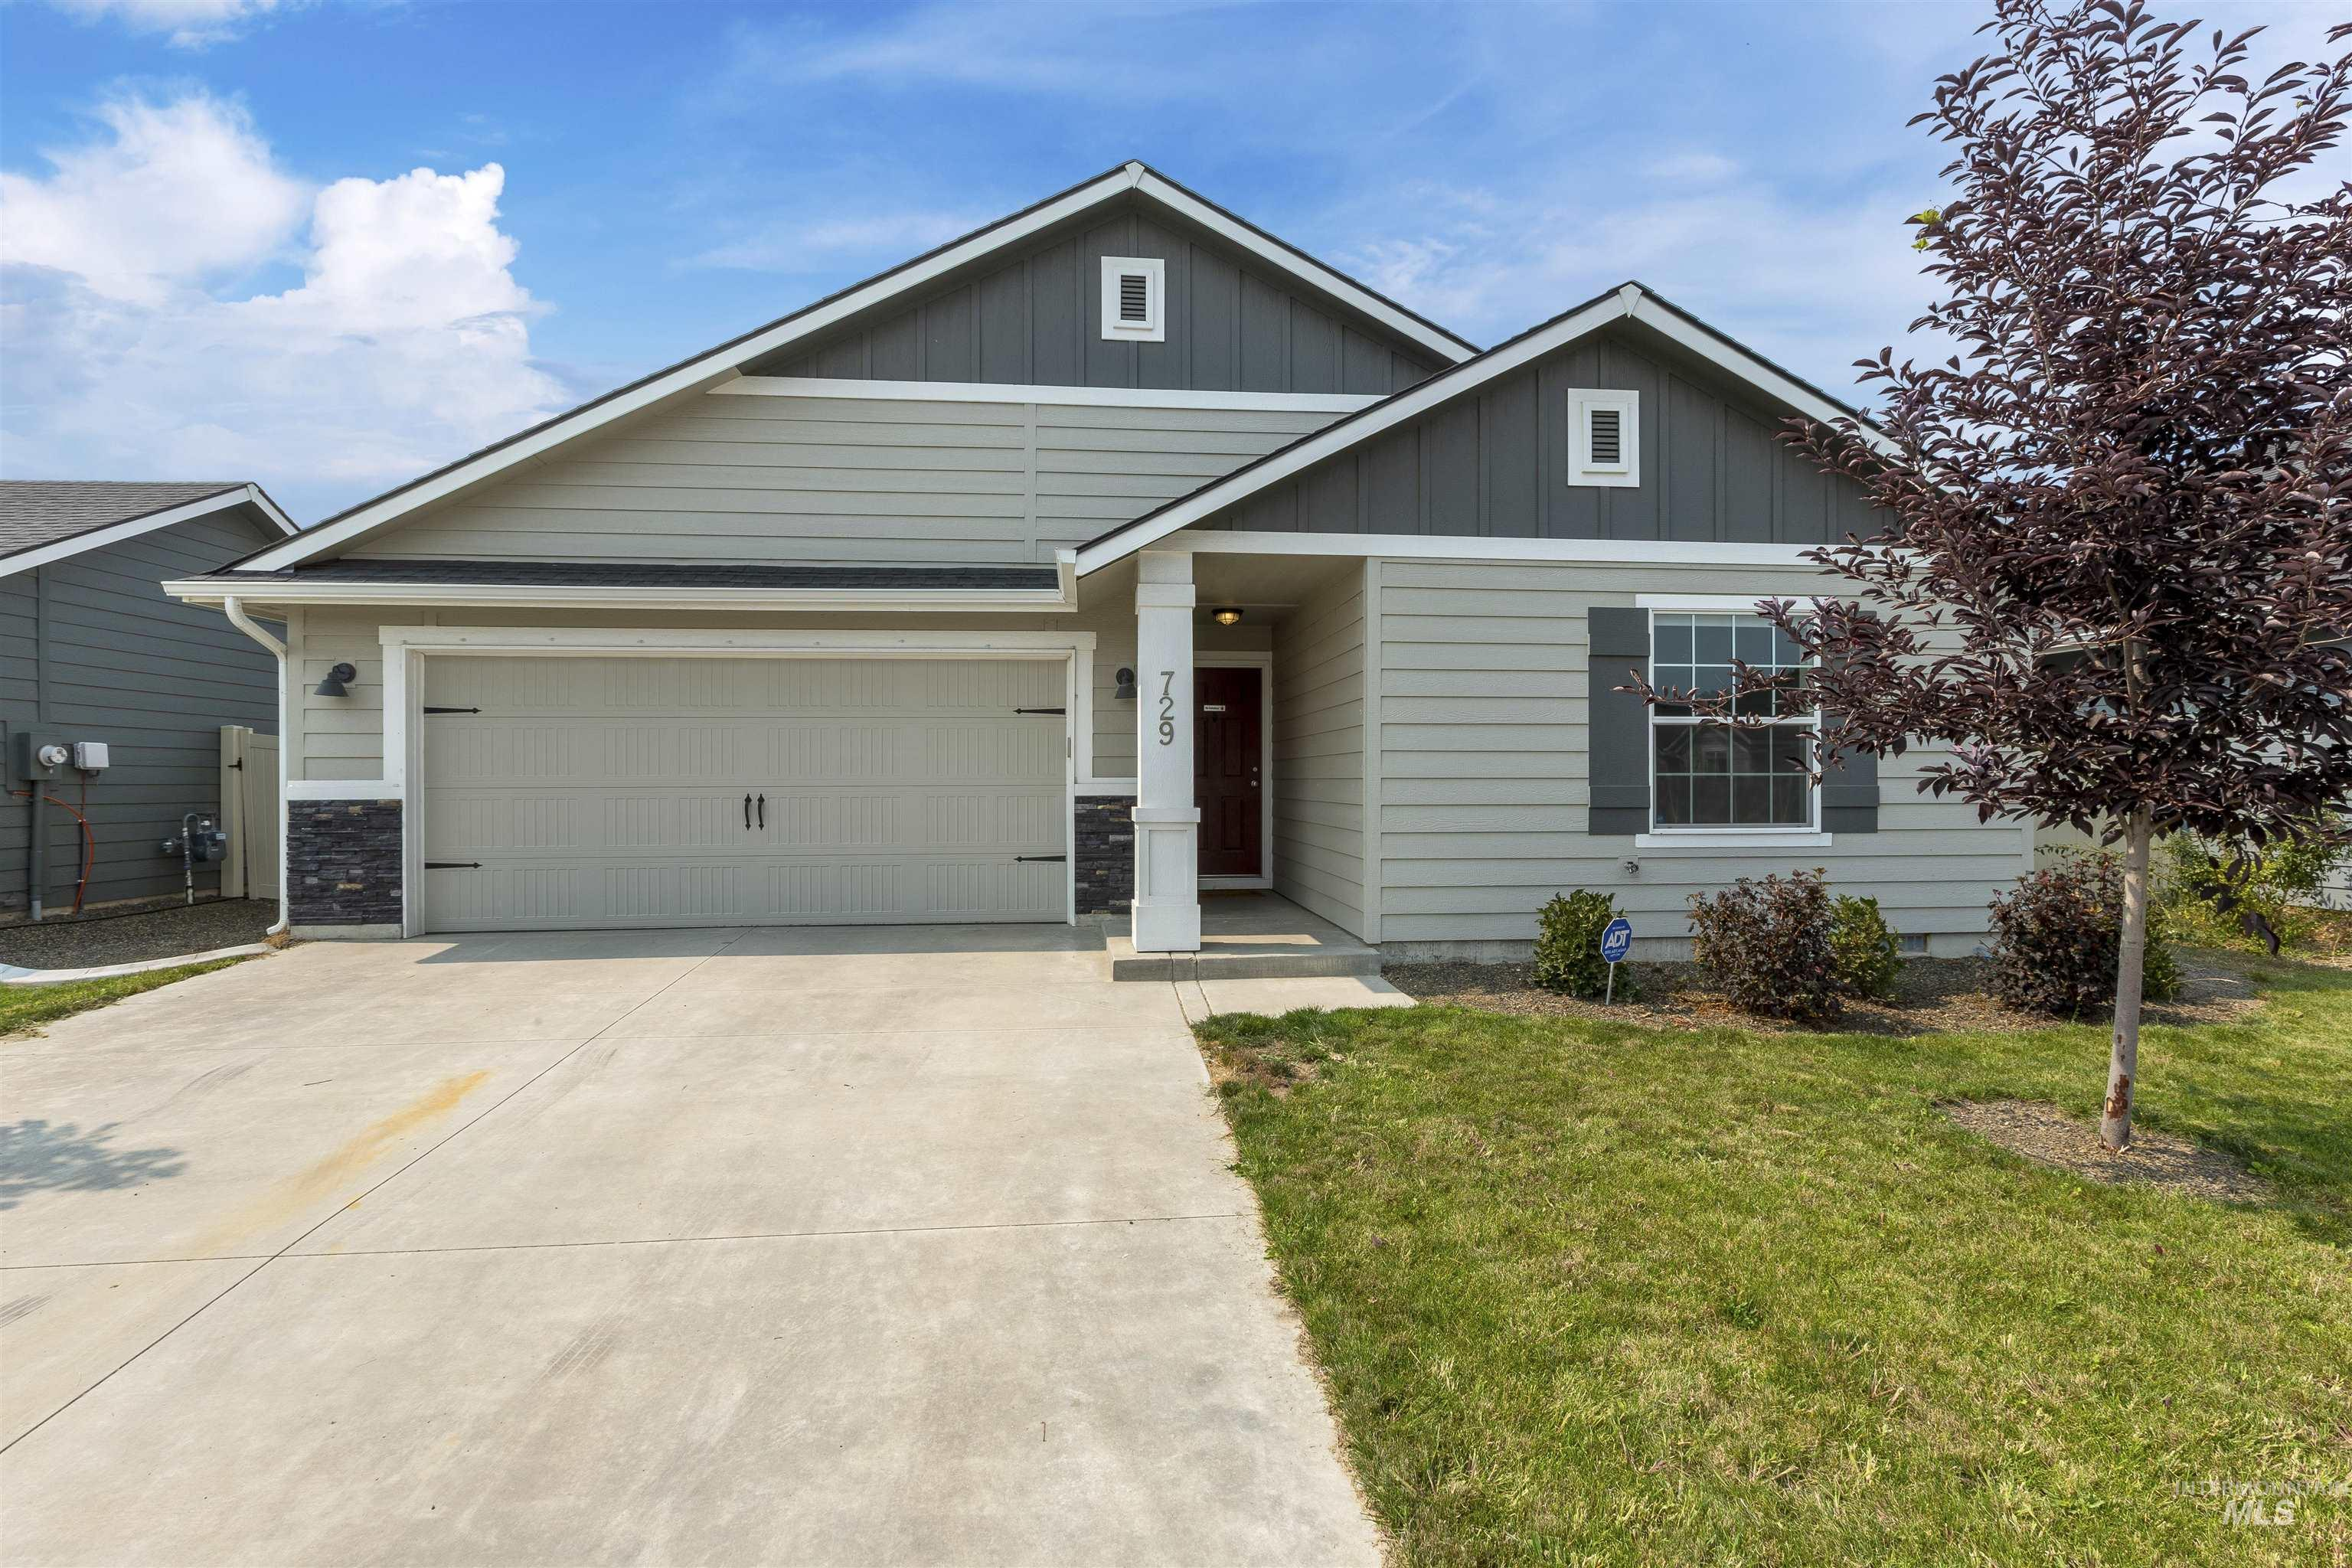 LIVES LARGE AND PERFECTLY LOCATED MERIDIAN HOME! – This well-maintained, open-plan layout is a must-see! The vaulted, spacious living room opens to both the kitchen and dining room, perfect for entertaining. The privacy of the split bedroom design is sure to please. Features include upgraded cabinets, dual vanity, energy-efficient construction, and more. Located in a great neighborhood just minutes from Fuller Park, Cherry Lane Golf Course, and Chaparral Elementary School. - Carolyn J Vaught, Voice: 208-890-4894, Keller Williams Realty Boise, Main: 208-672-9000, http://www.iknowidaho.com.com